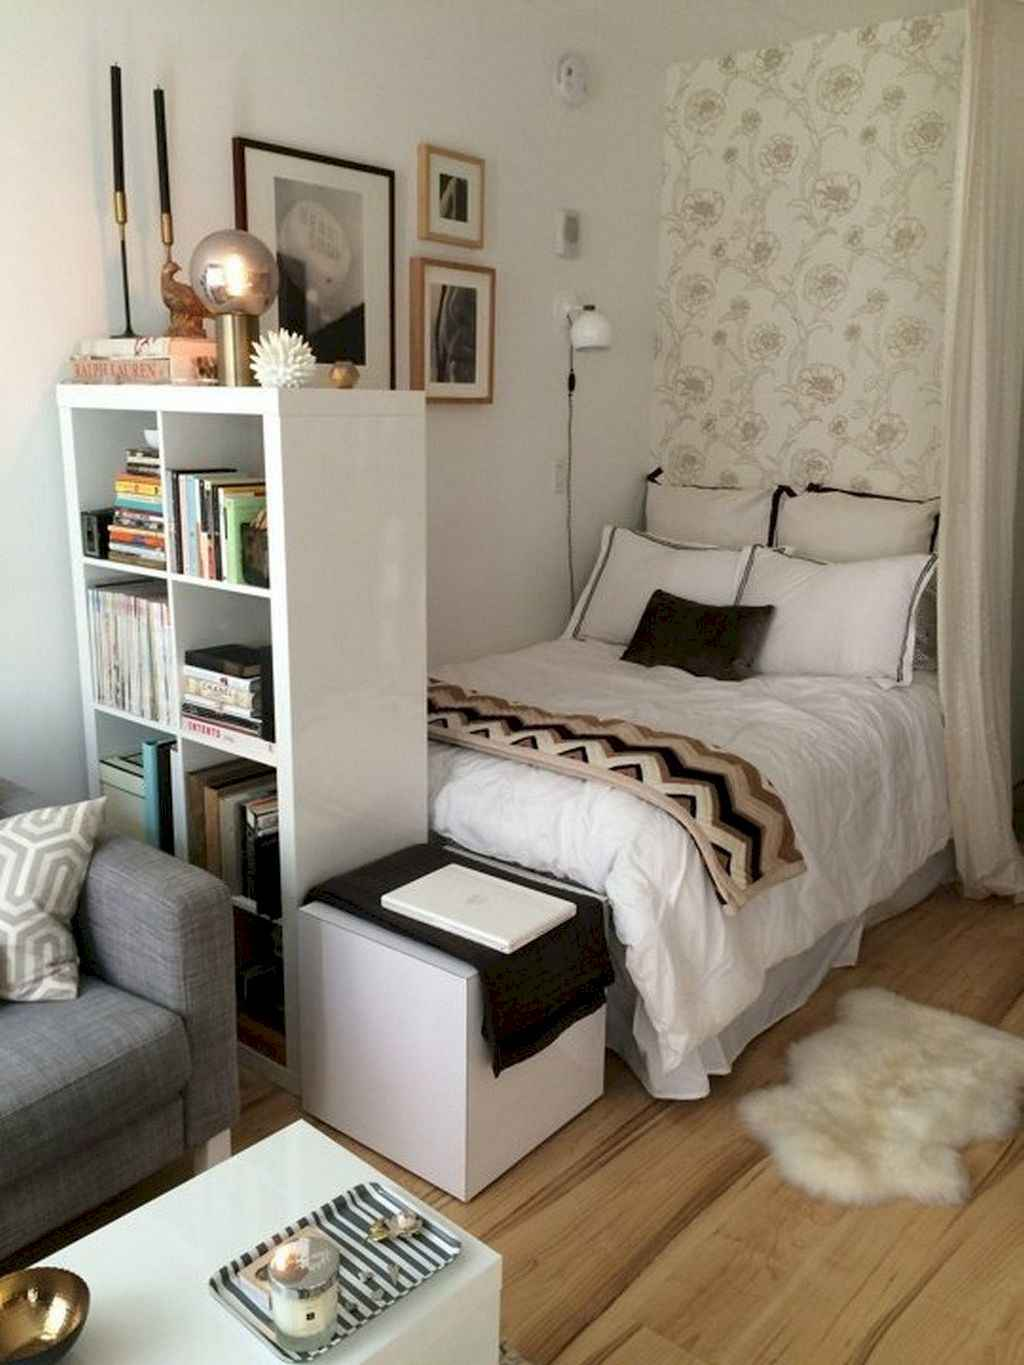 Clever college apartment decorating ideas on a budget (69)